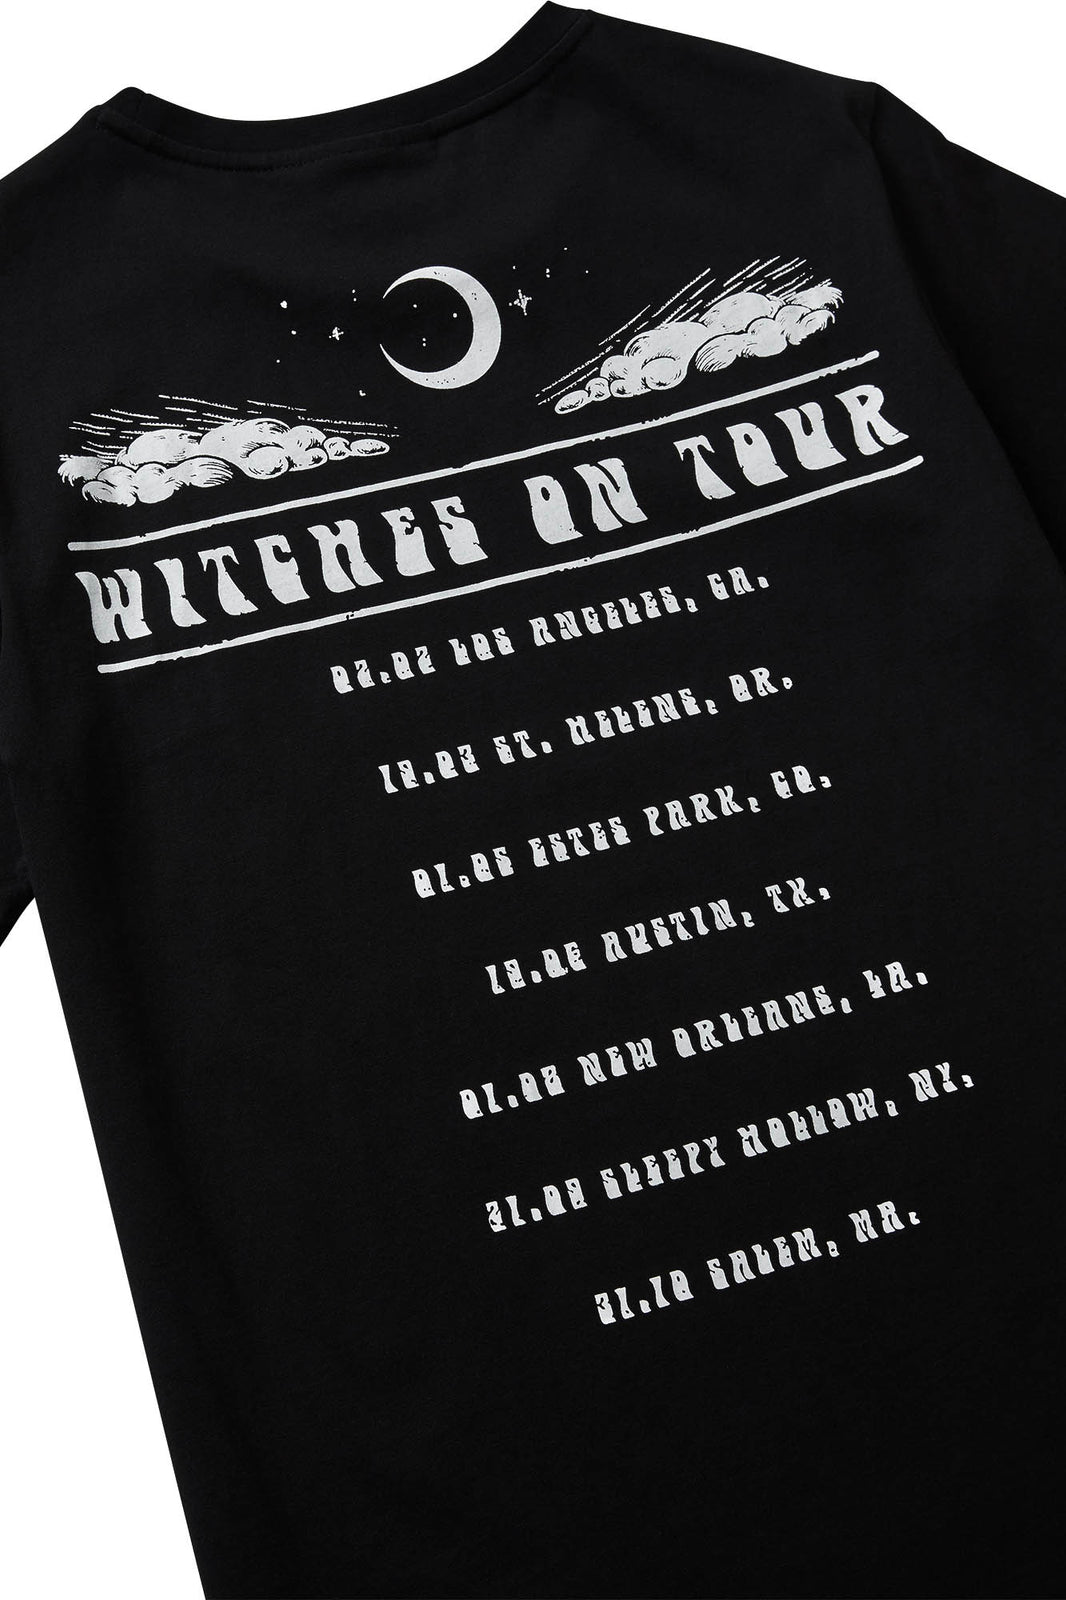 Witches On Tour T-Shirt